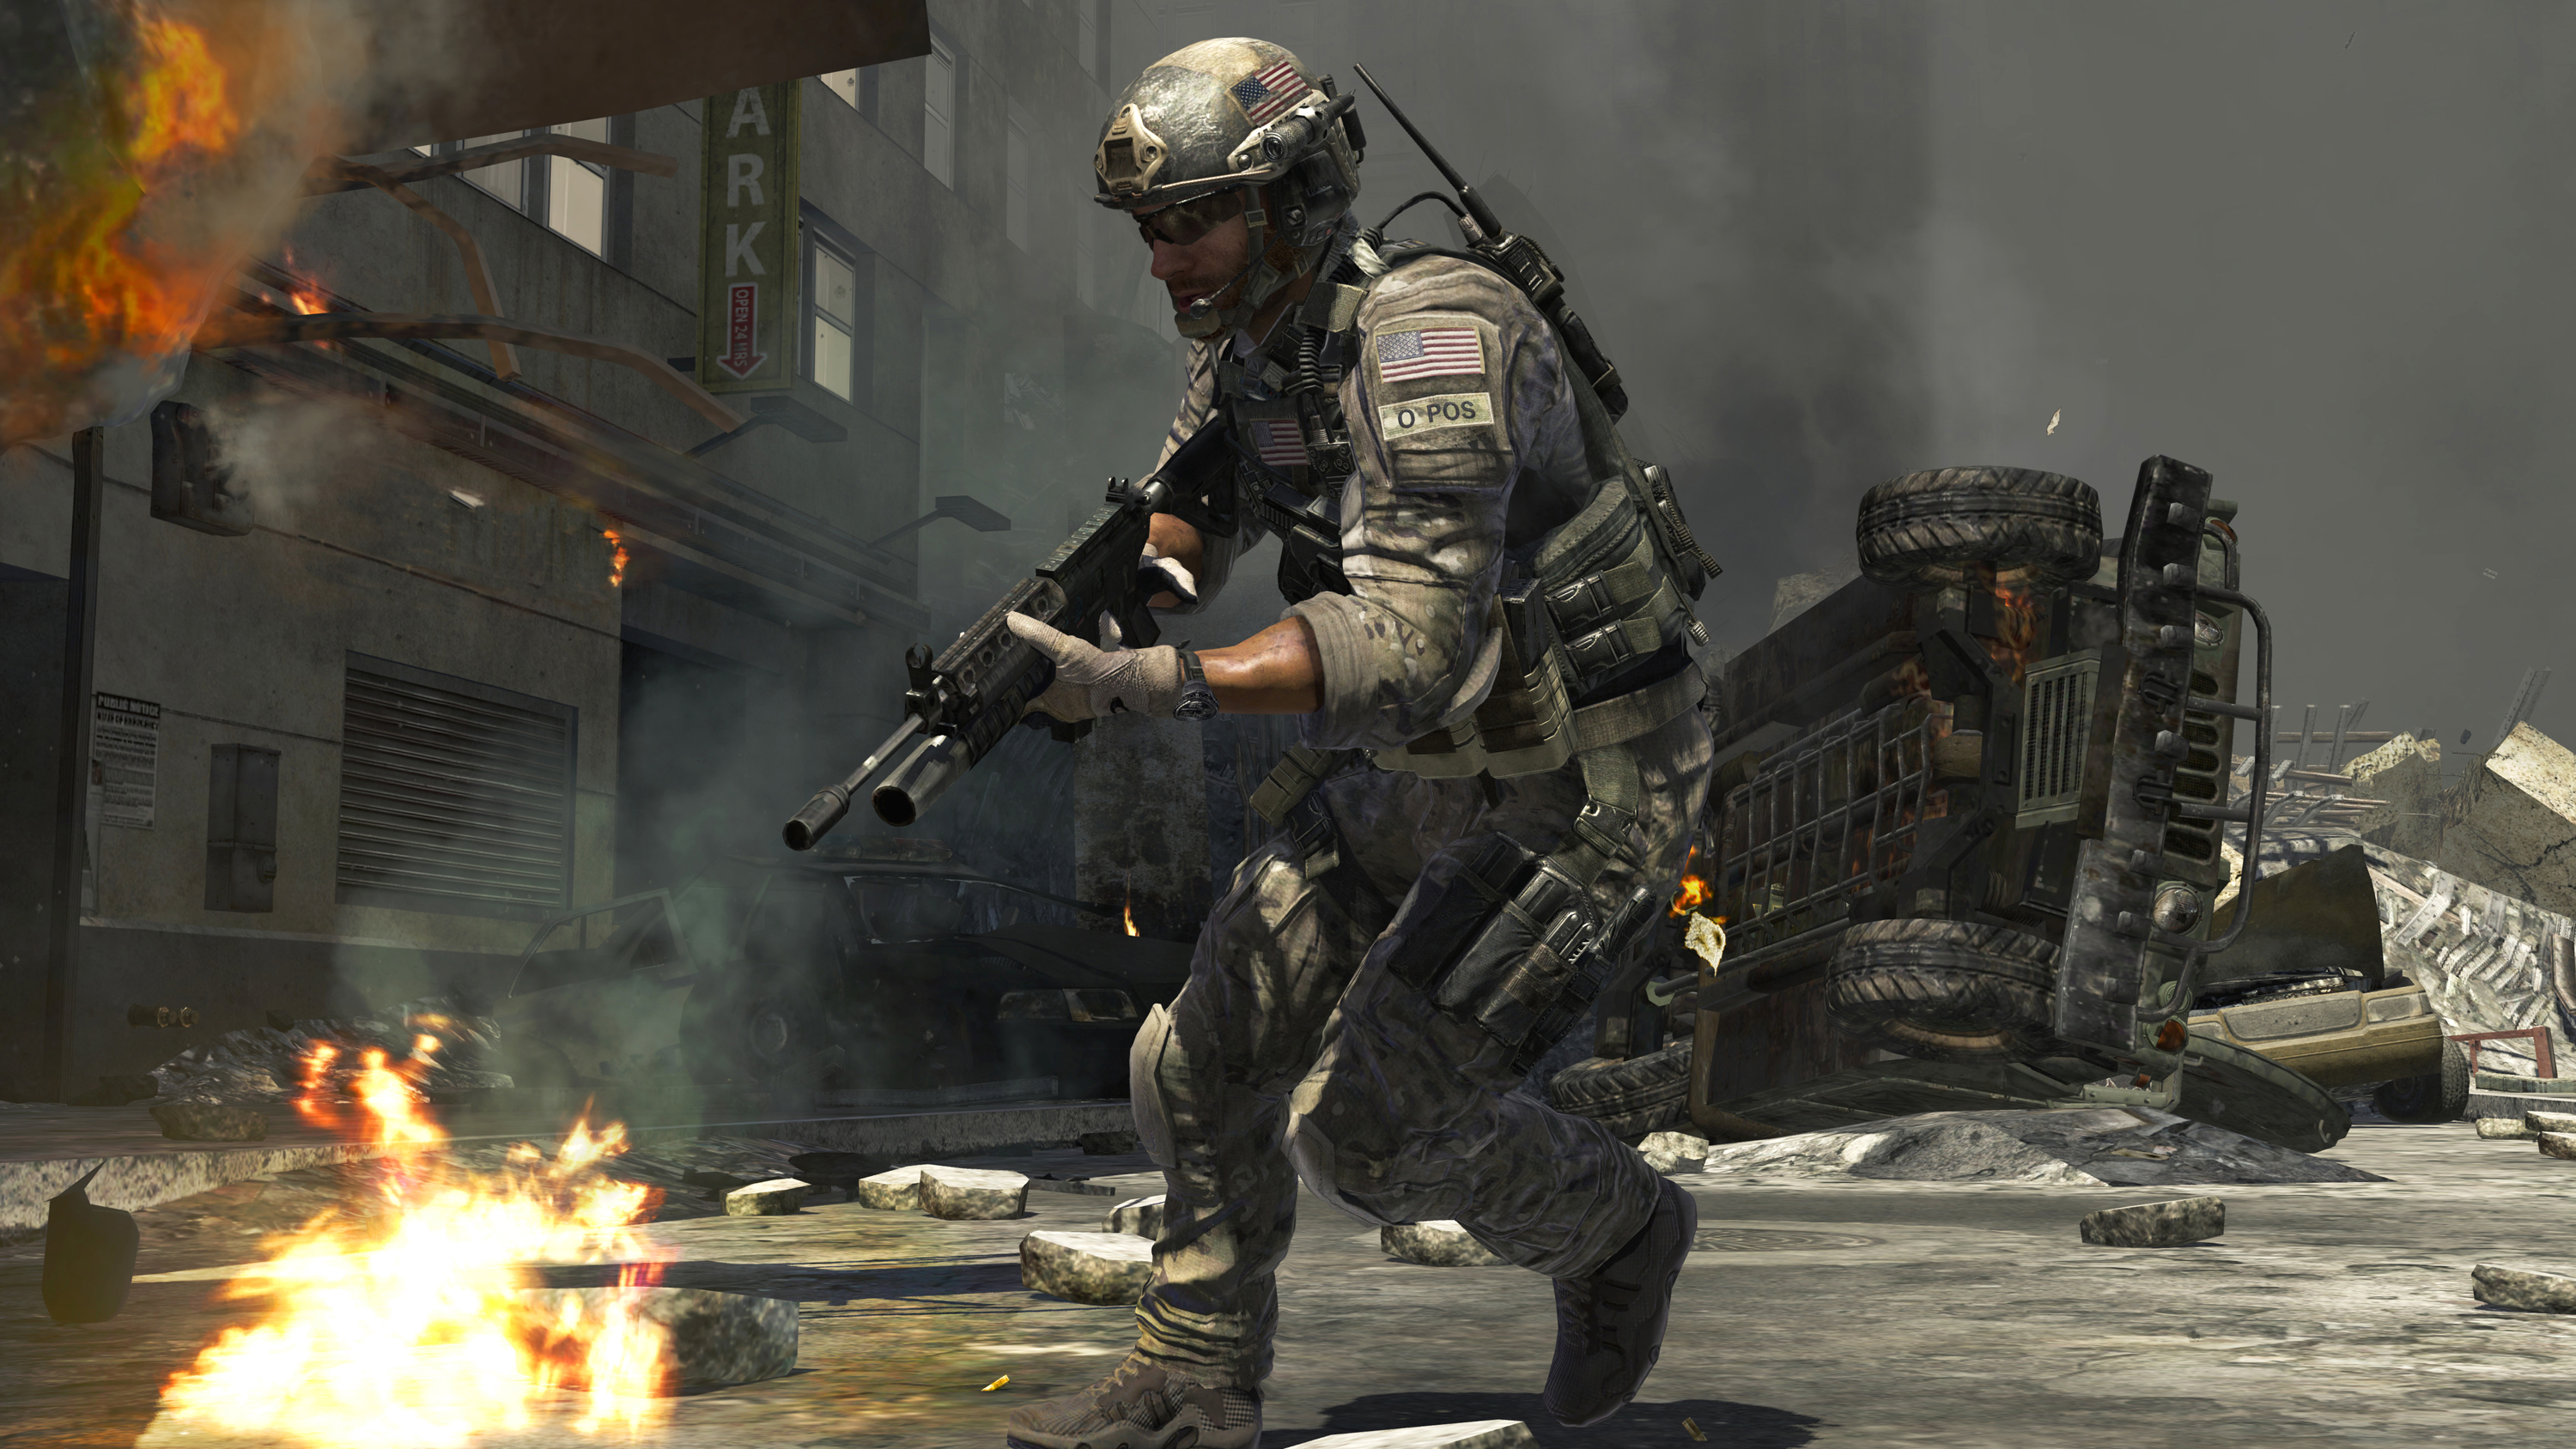 Hack call of duty mw3 pc | Call of Duty Modern Warfare 3